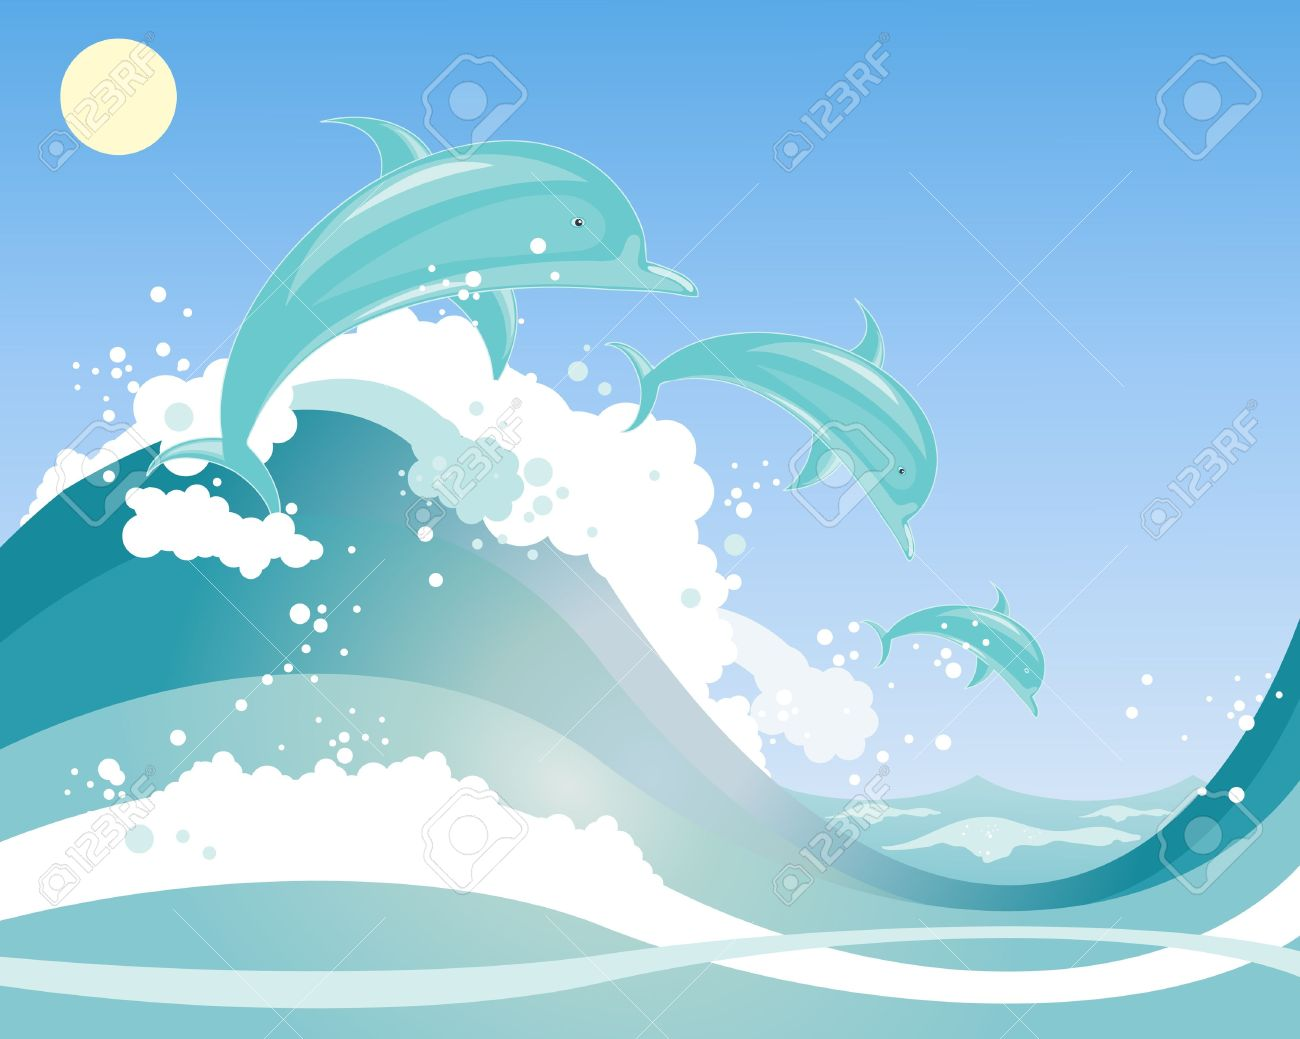 Sky and Waves Clip Art.